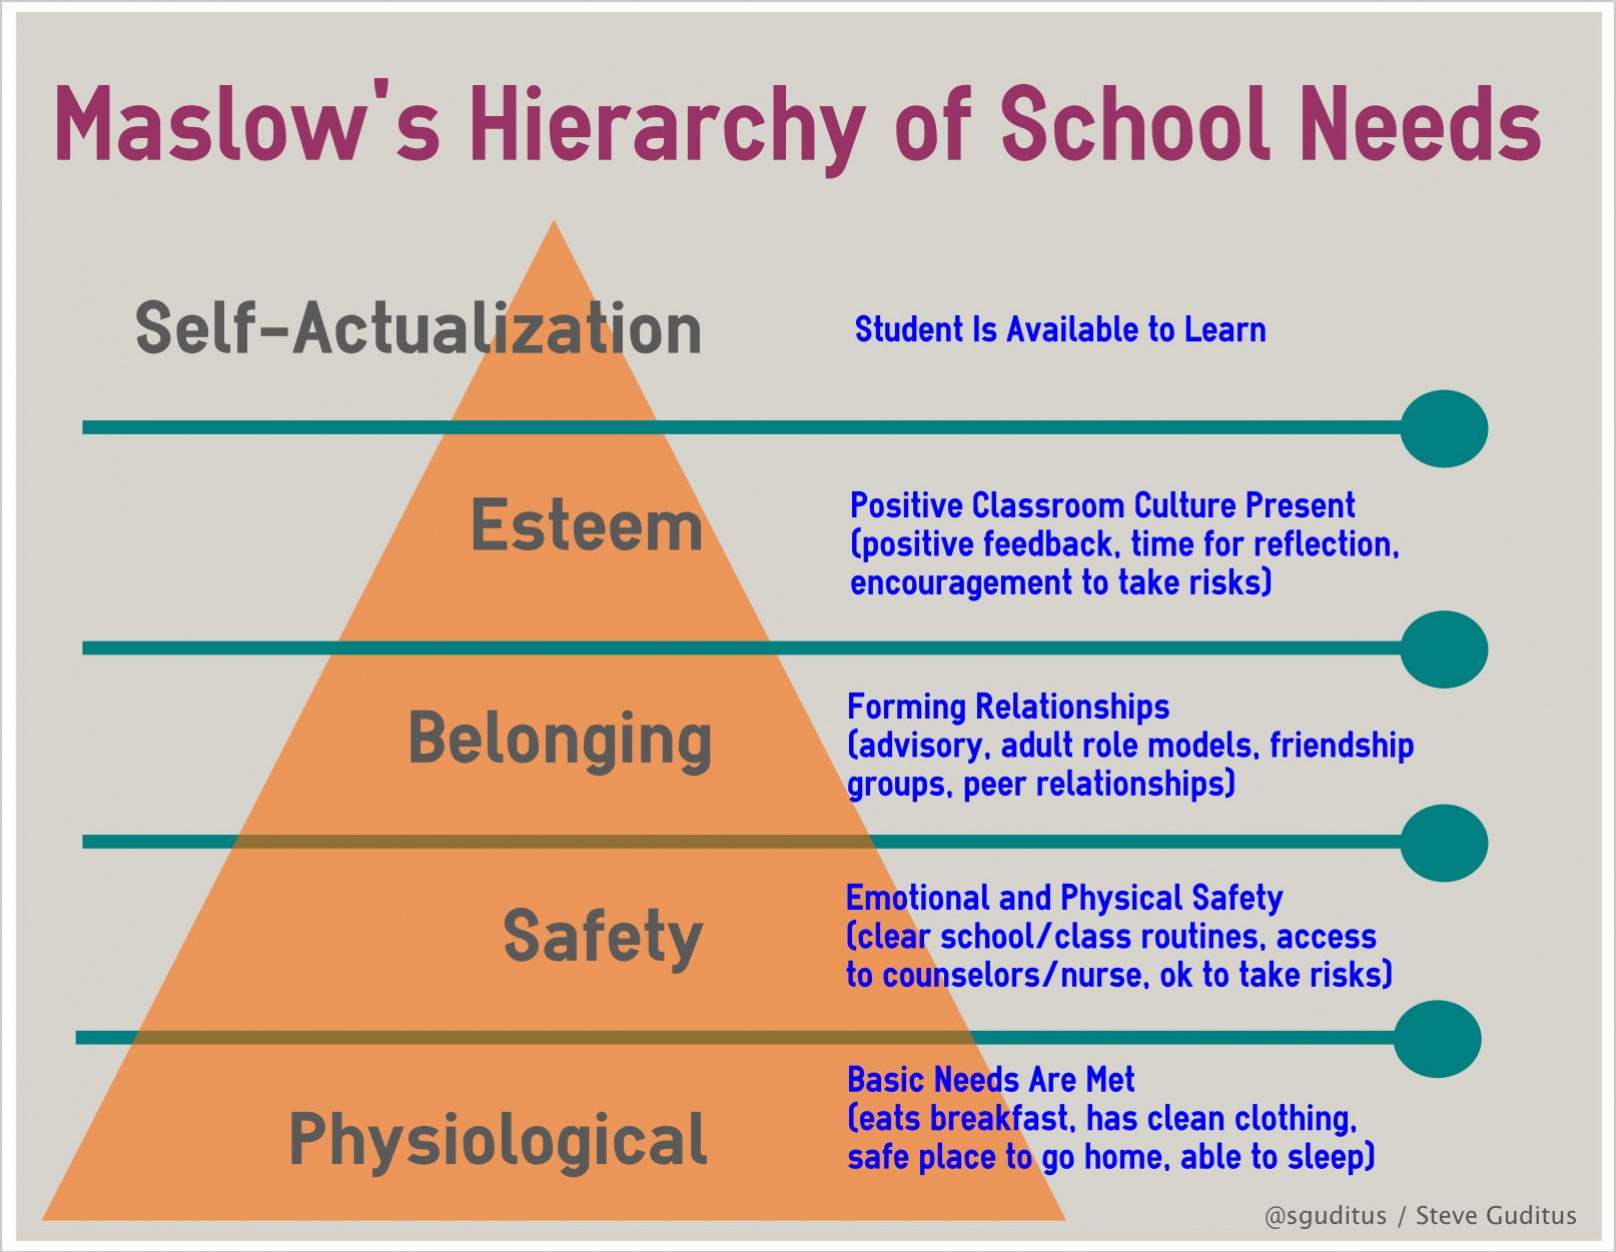 reflections of an educator maslow s hierarchy of school needs maslowshierarchyofschoolneeds title